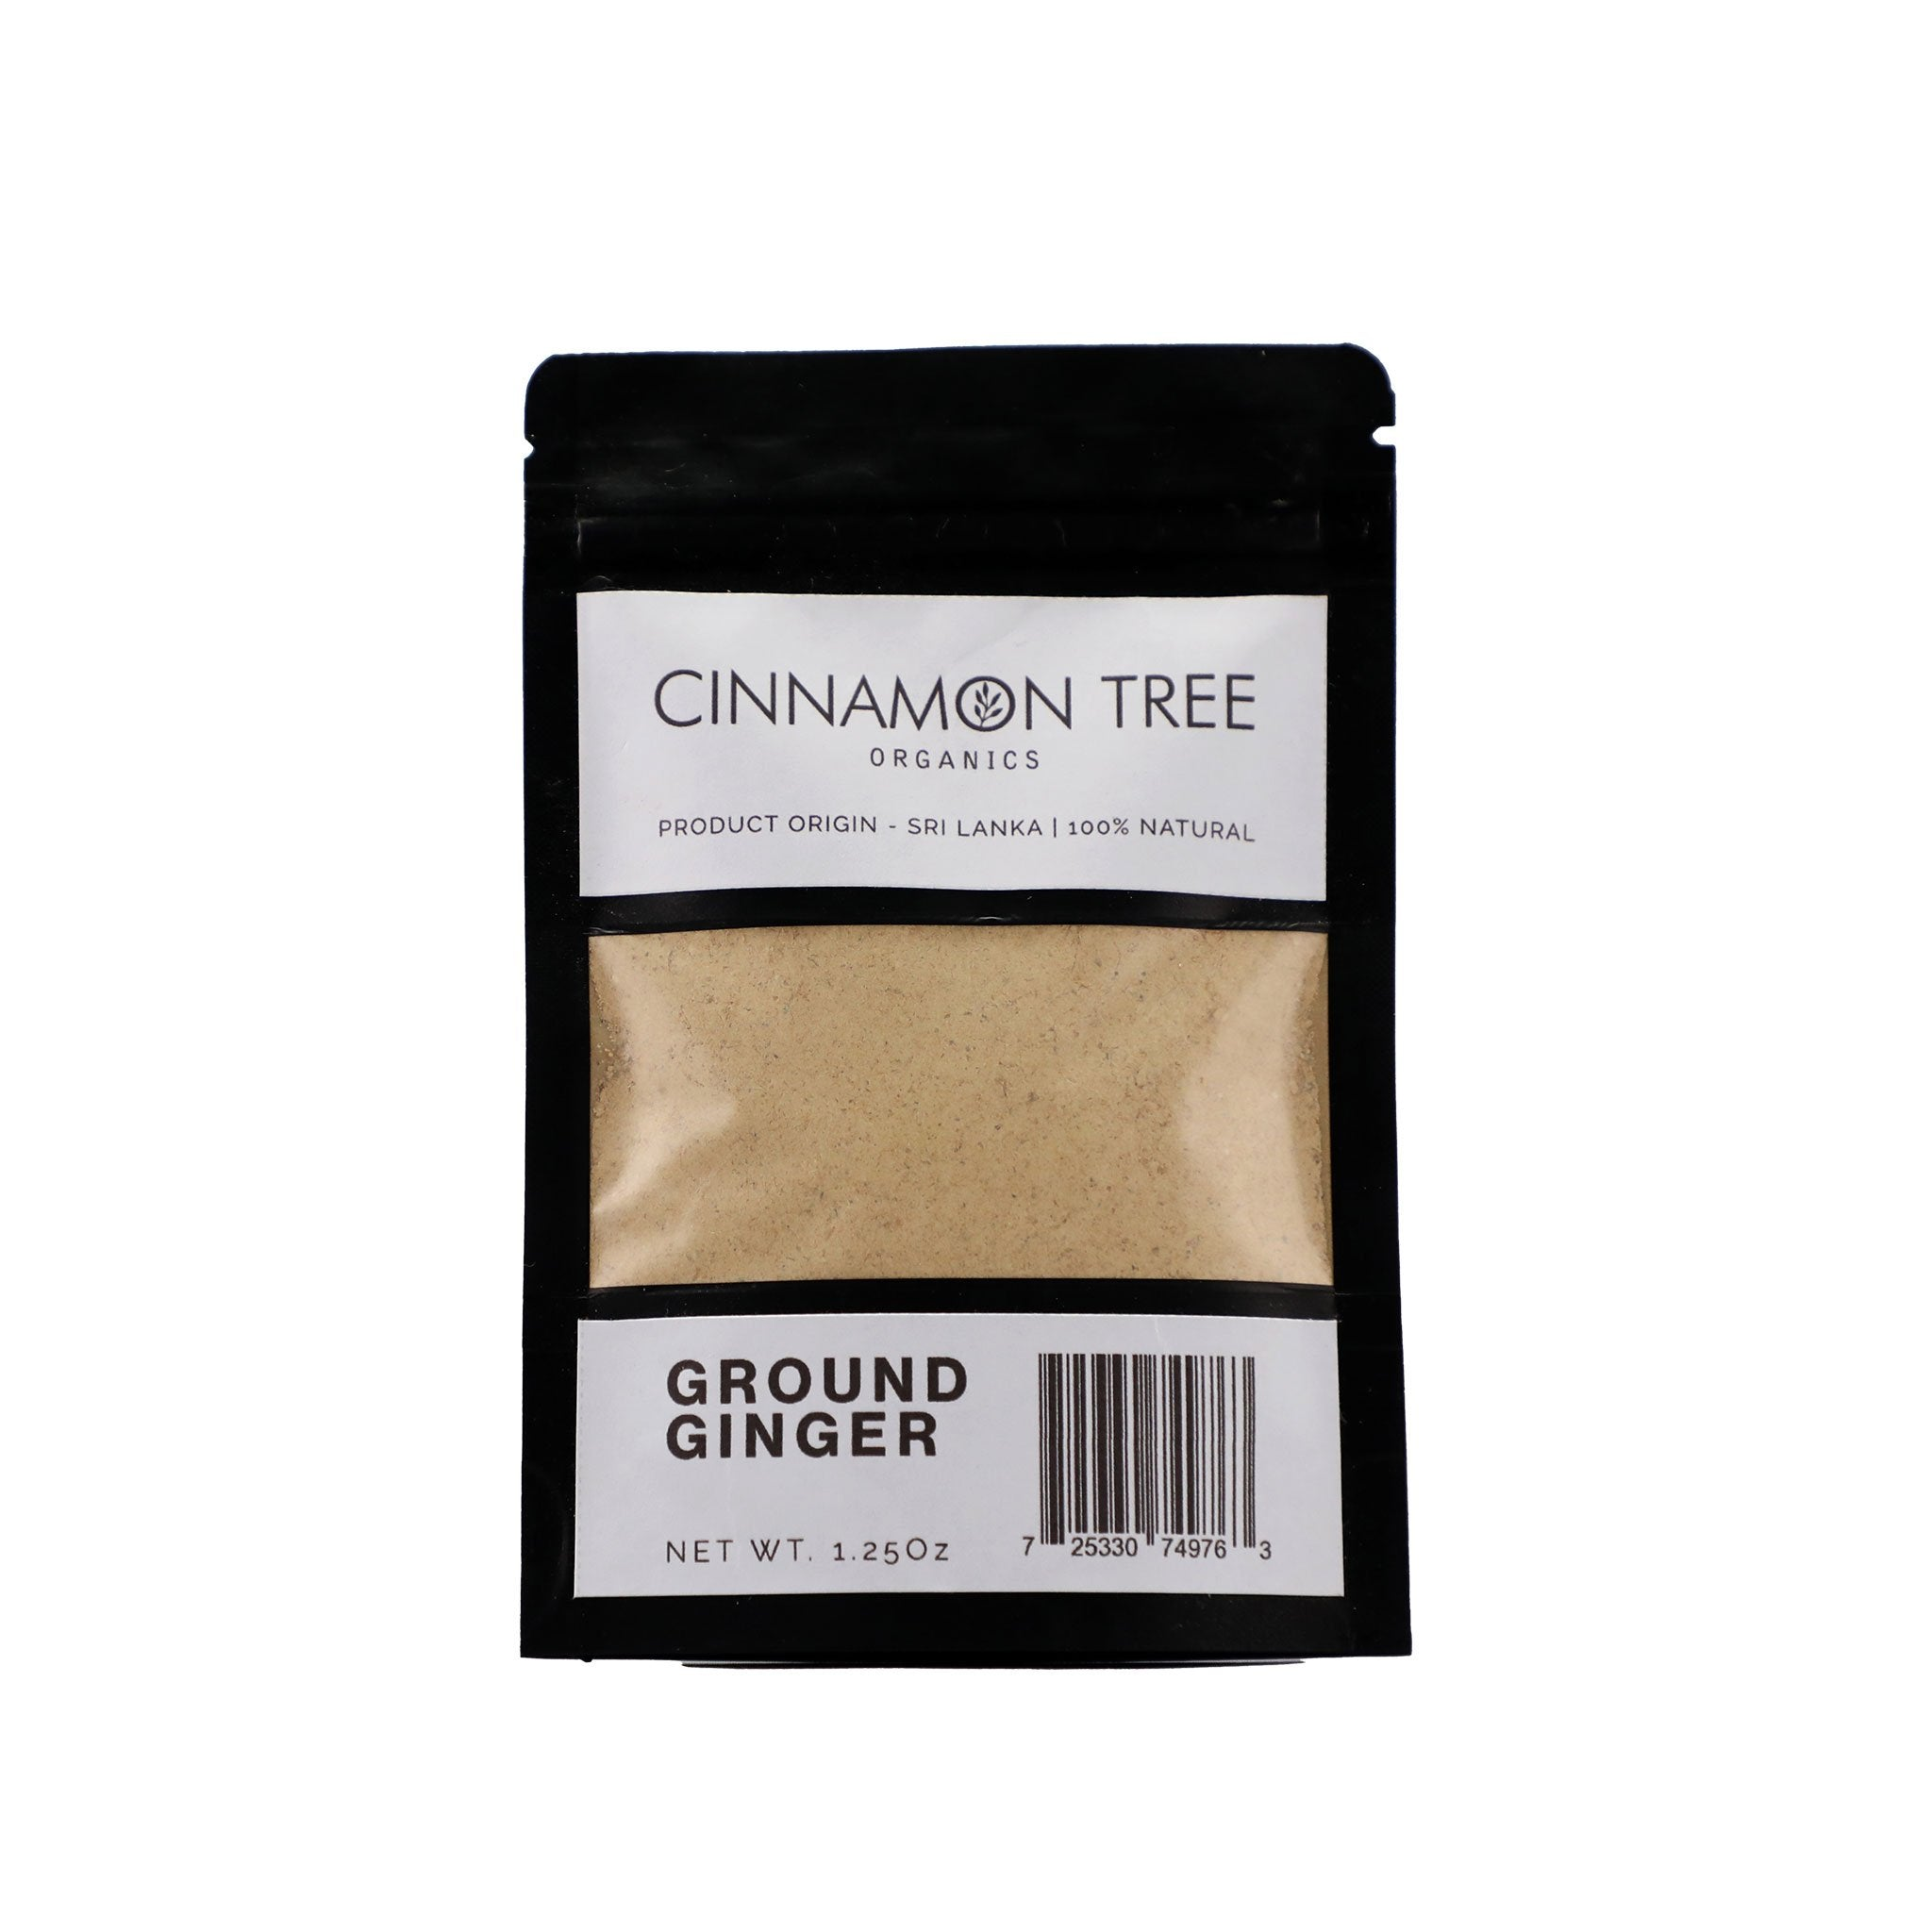 Ground Ceylon ginger 1.25 Oz pack